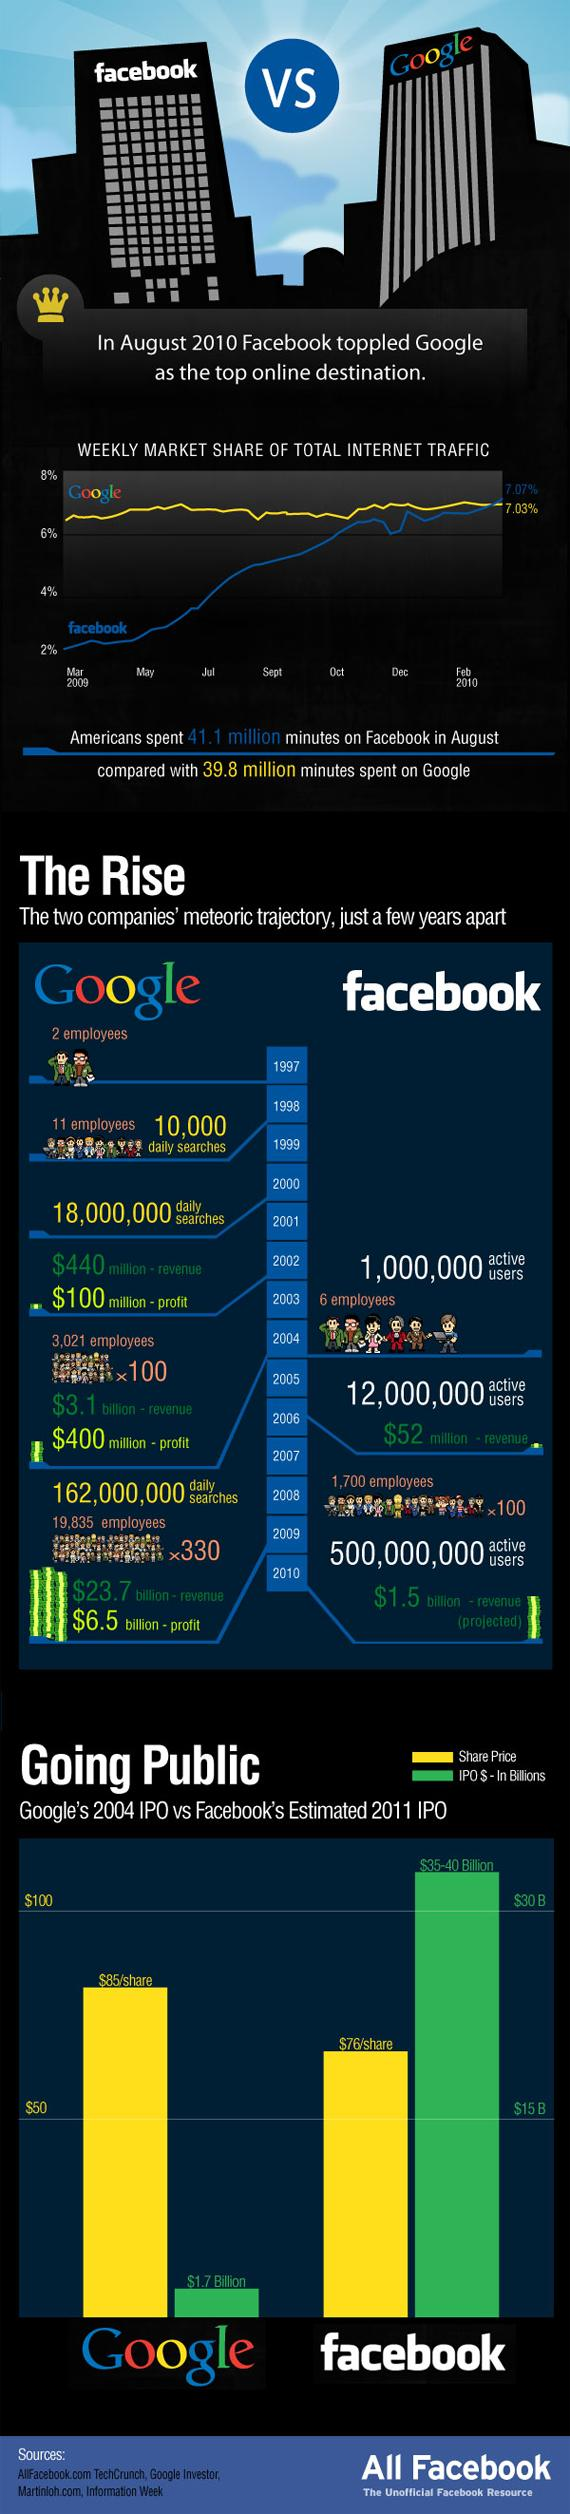 google vs facebook Get Ready: Fight!! As grandes brigas da internet em 20 infográficos